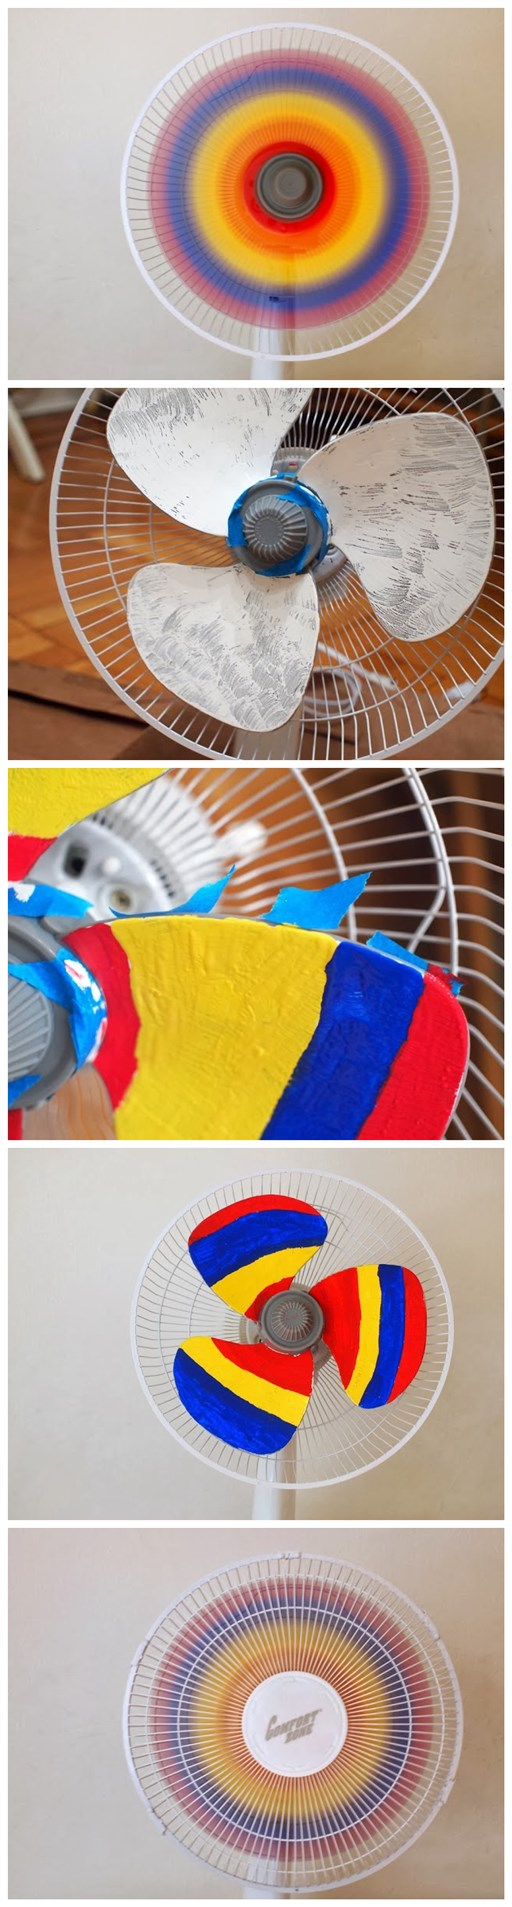 How to make DIY rainbow fan 2